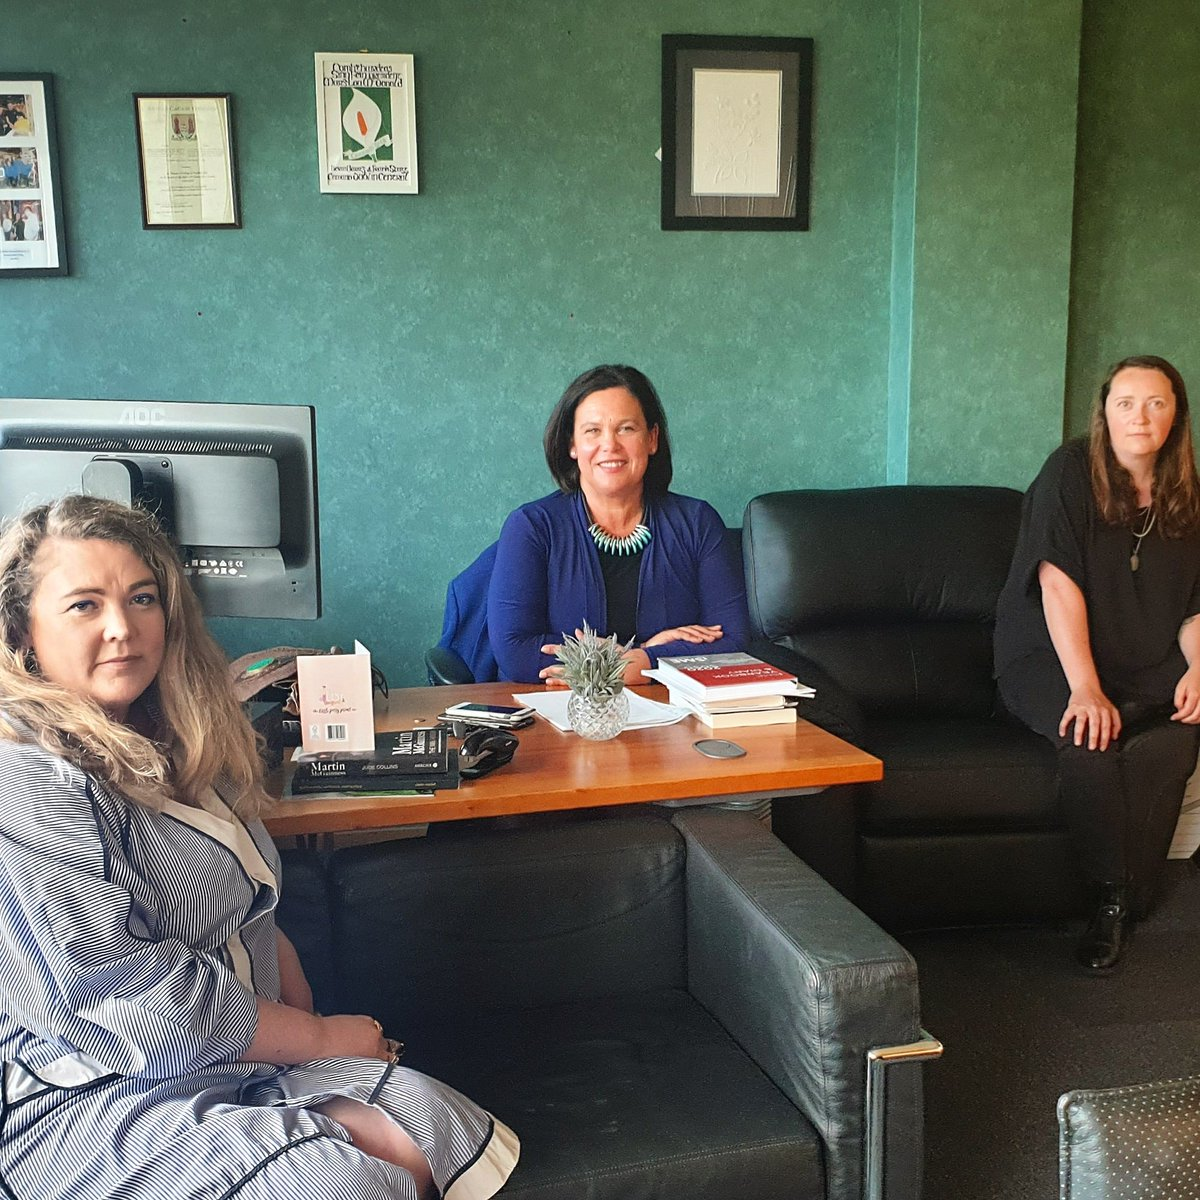 """Tequila, Thin Lizzy, and Tories""   We went to LH2000 today to record 'EP 51:  32 questions for @MaryLouMcDonald'.    You can support us on Patreon or else available wherever you get your podcasts. https://t.co/uXZNA5EAI4"